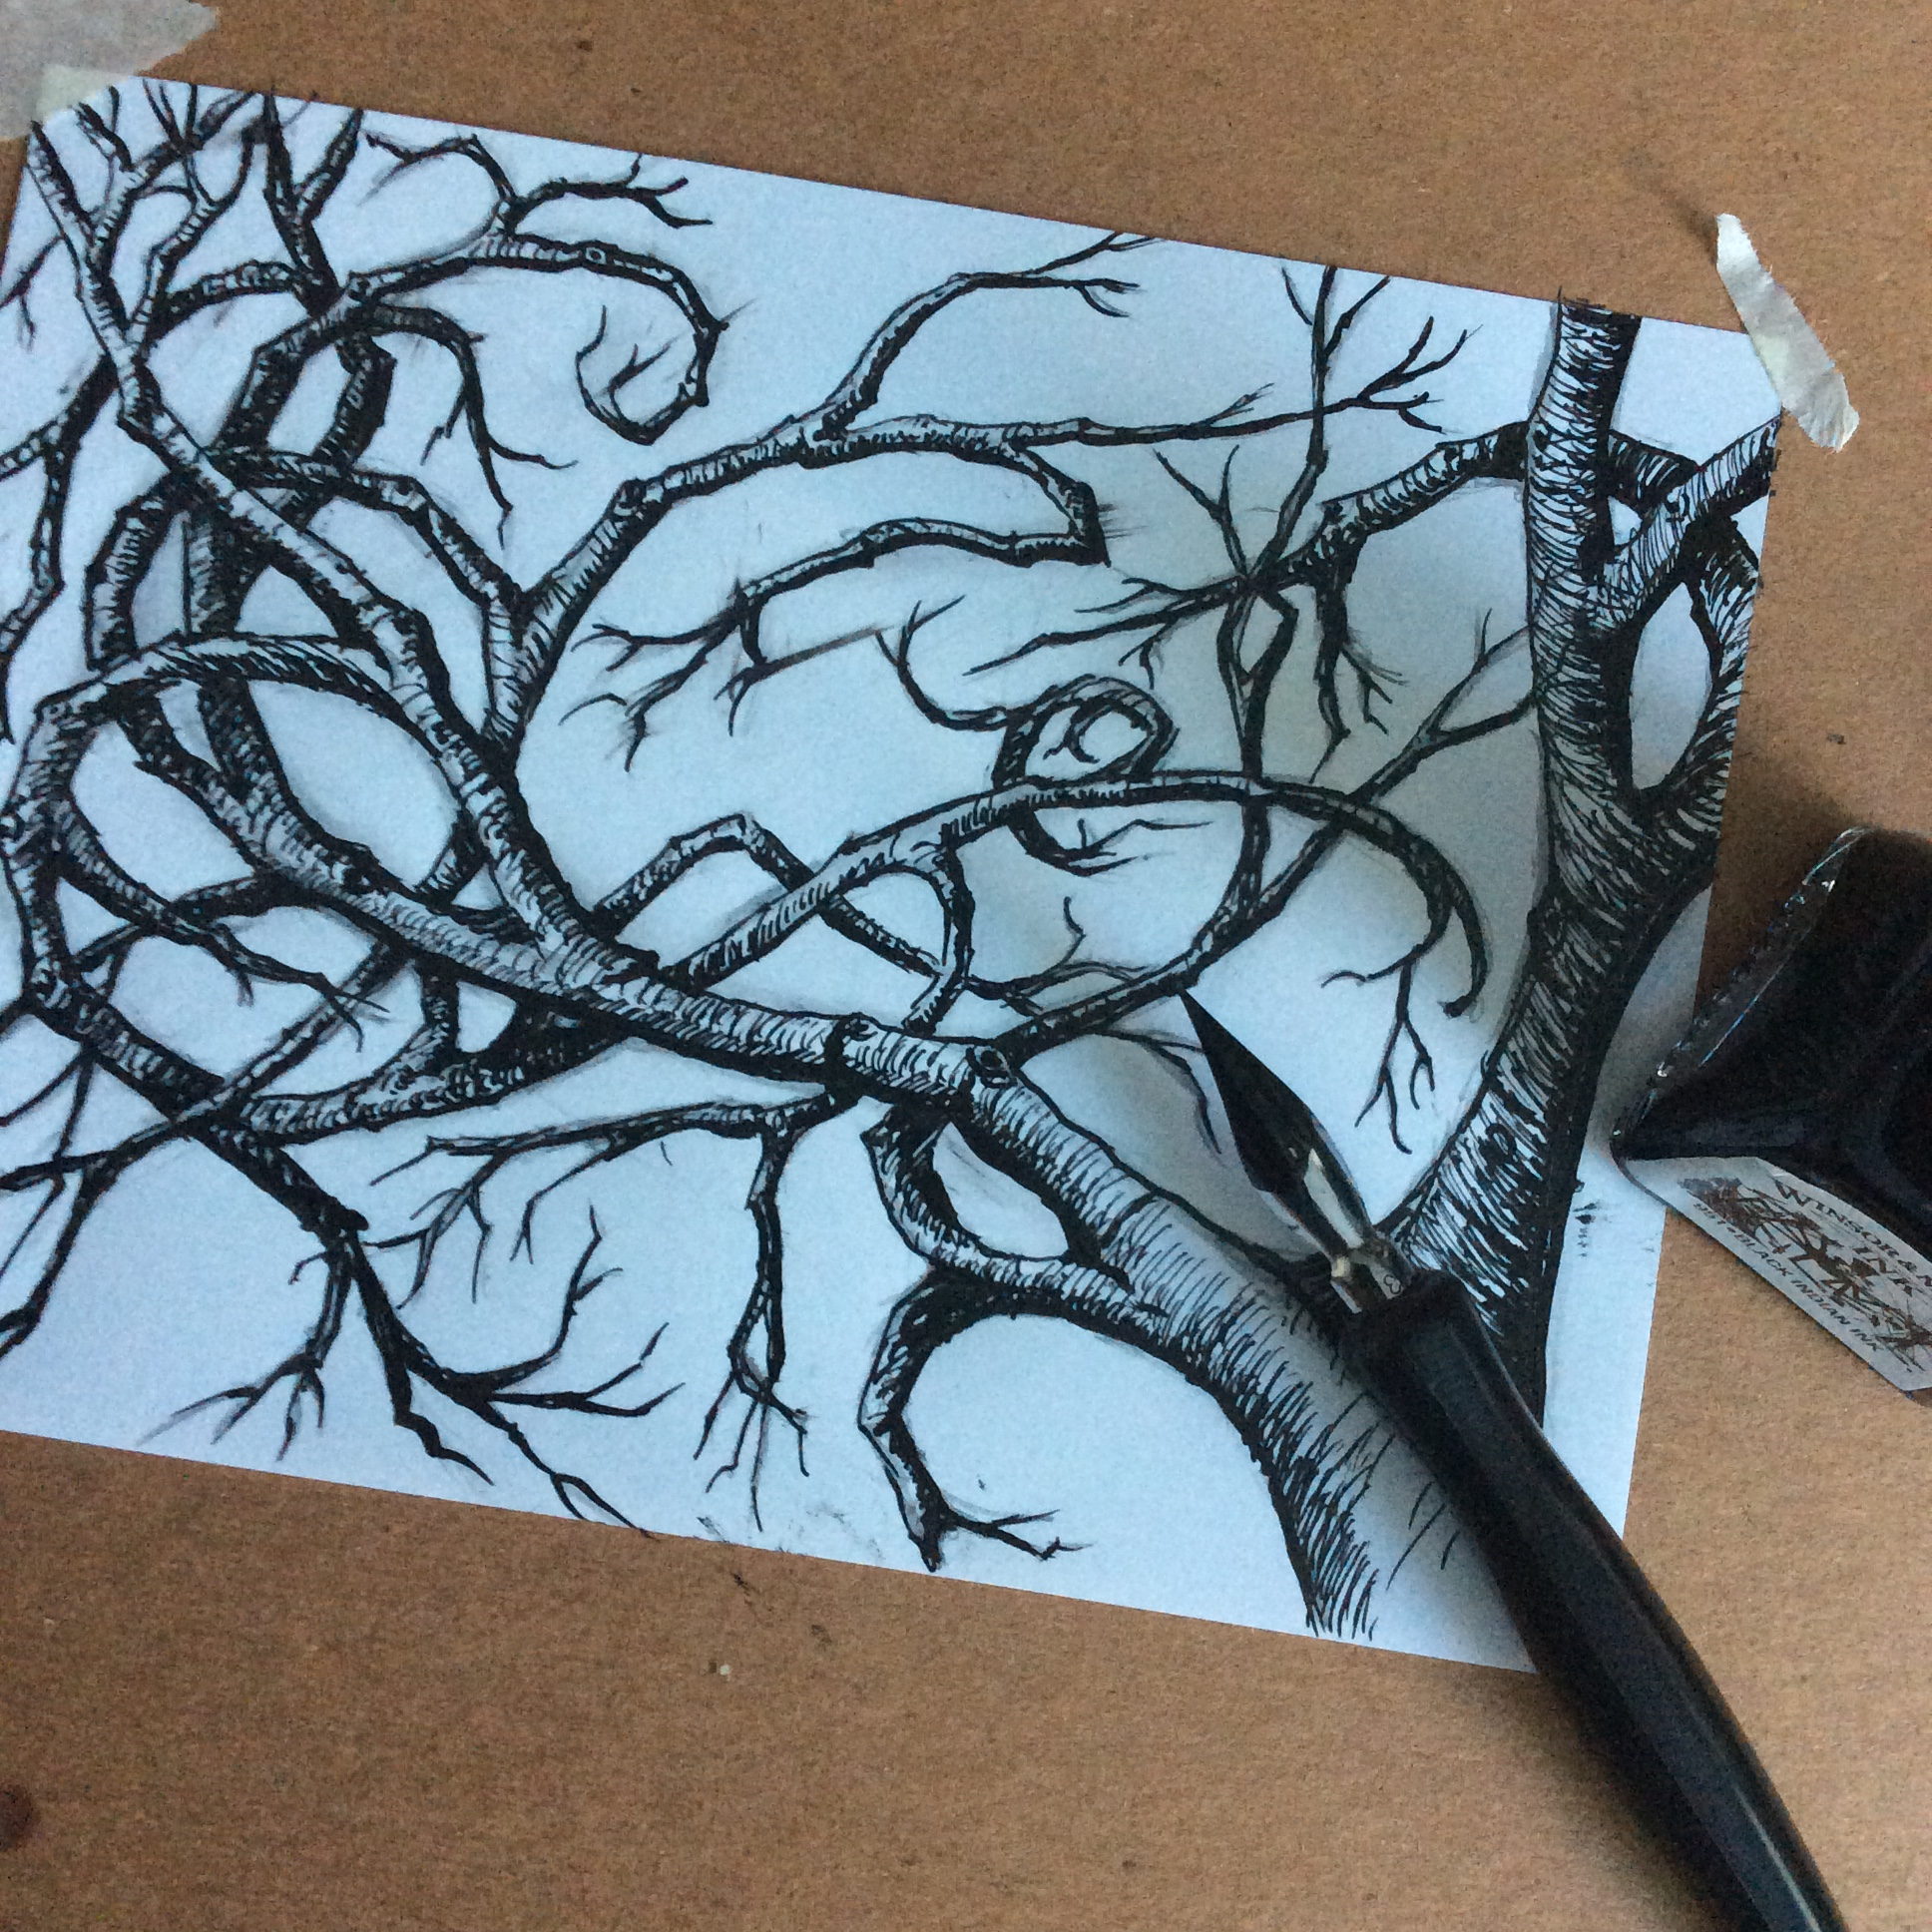 Experimental Sunday pen and ink